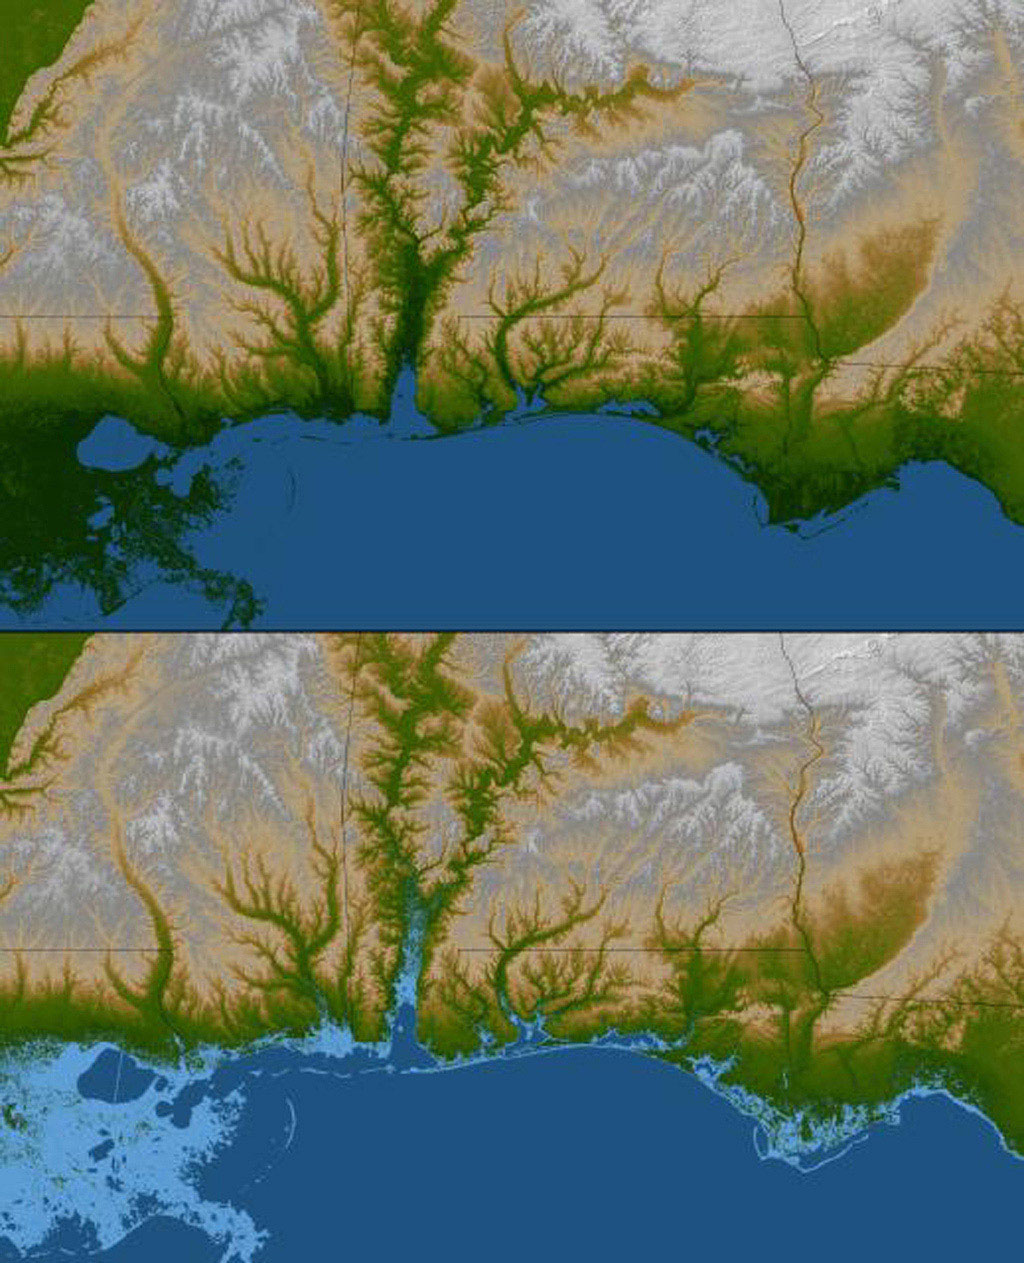 The topography of the Gulf Coast states is well shown in this color-coded shaded relief map generated with data from NASA's Shuttle Radar Topography Mission.